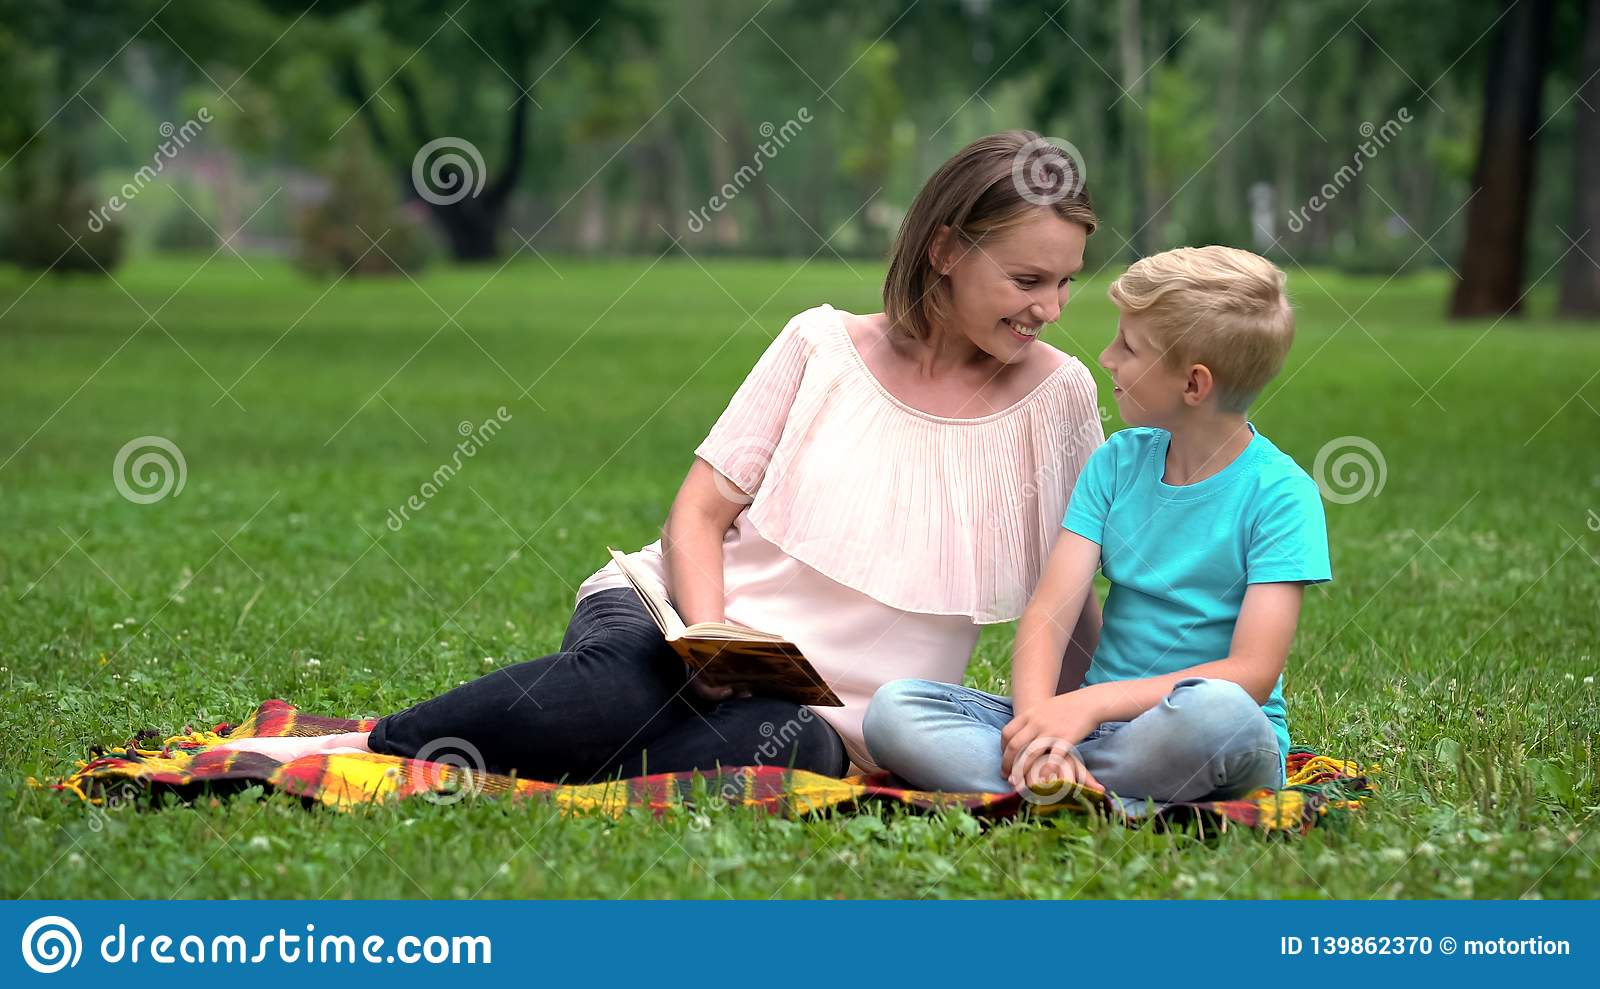 Son and mother reading interesting adventure book, sitting on blanket in park